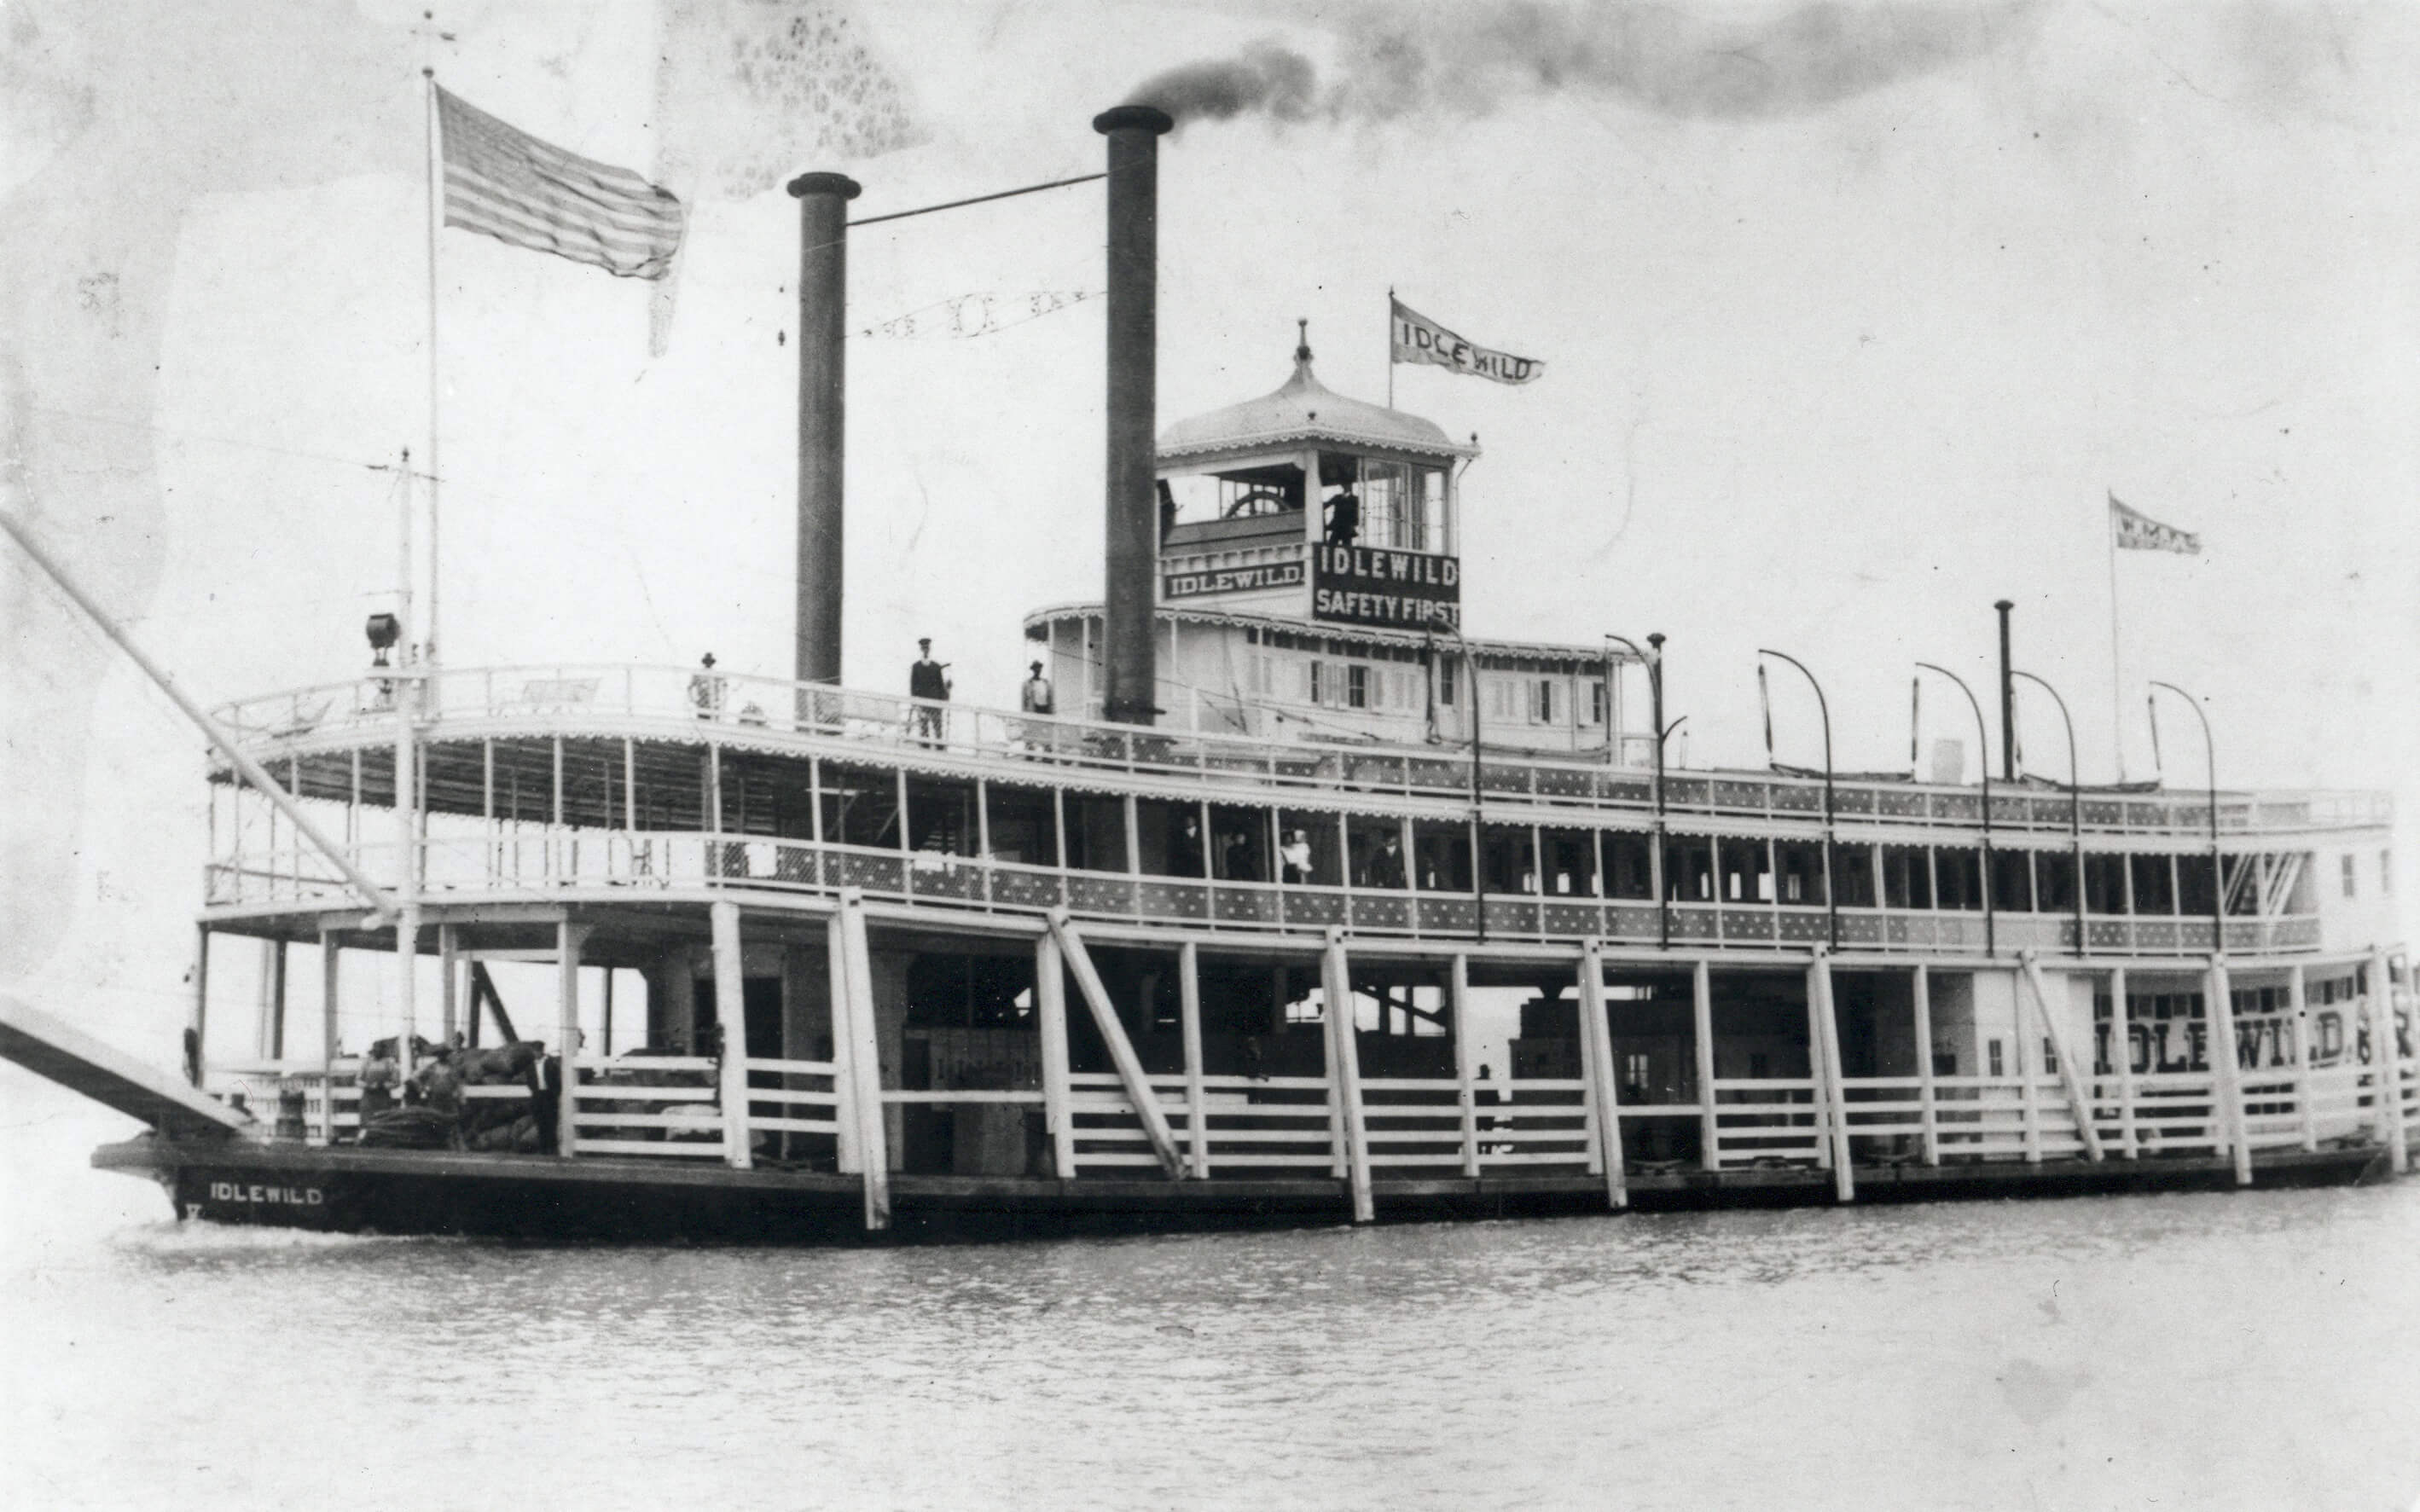 The Idlewild (image from Belle of Louisville website)